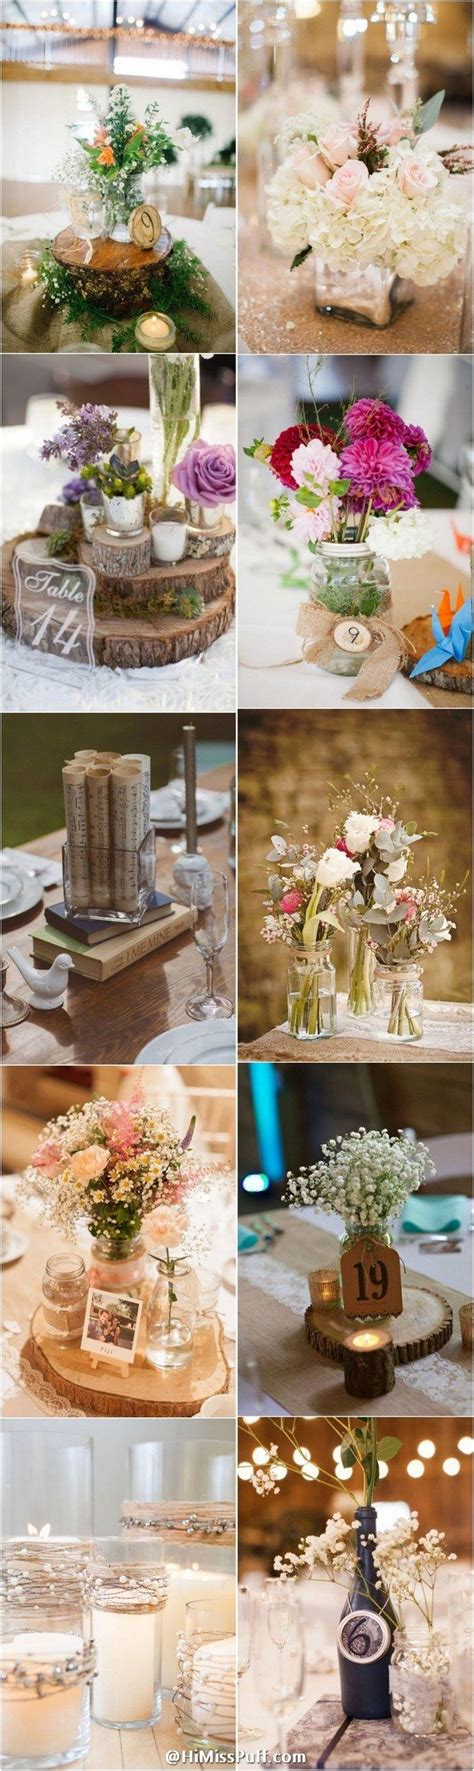 country style centerpieces for weddings 1000 ideas about country wedding centerpieces on